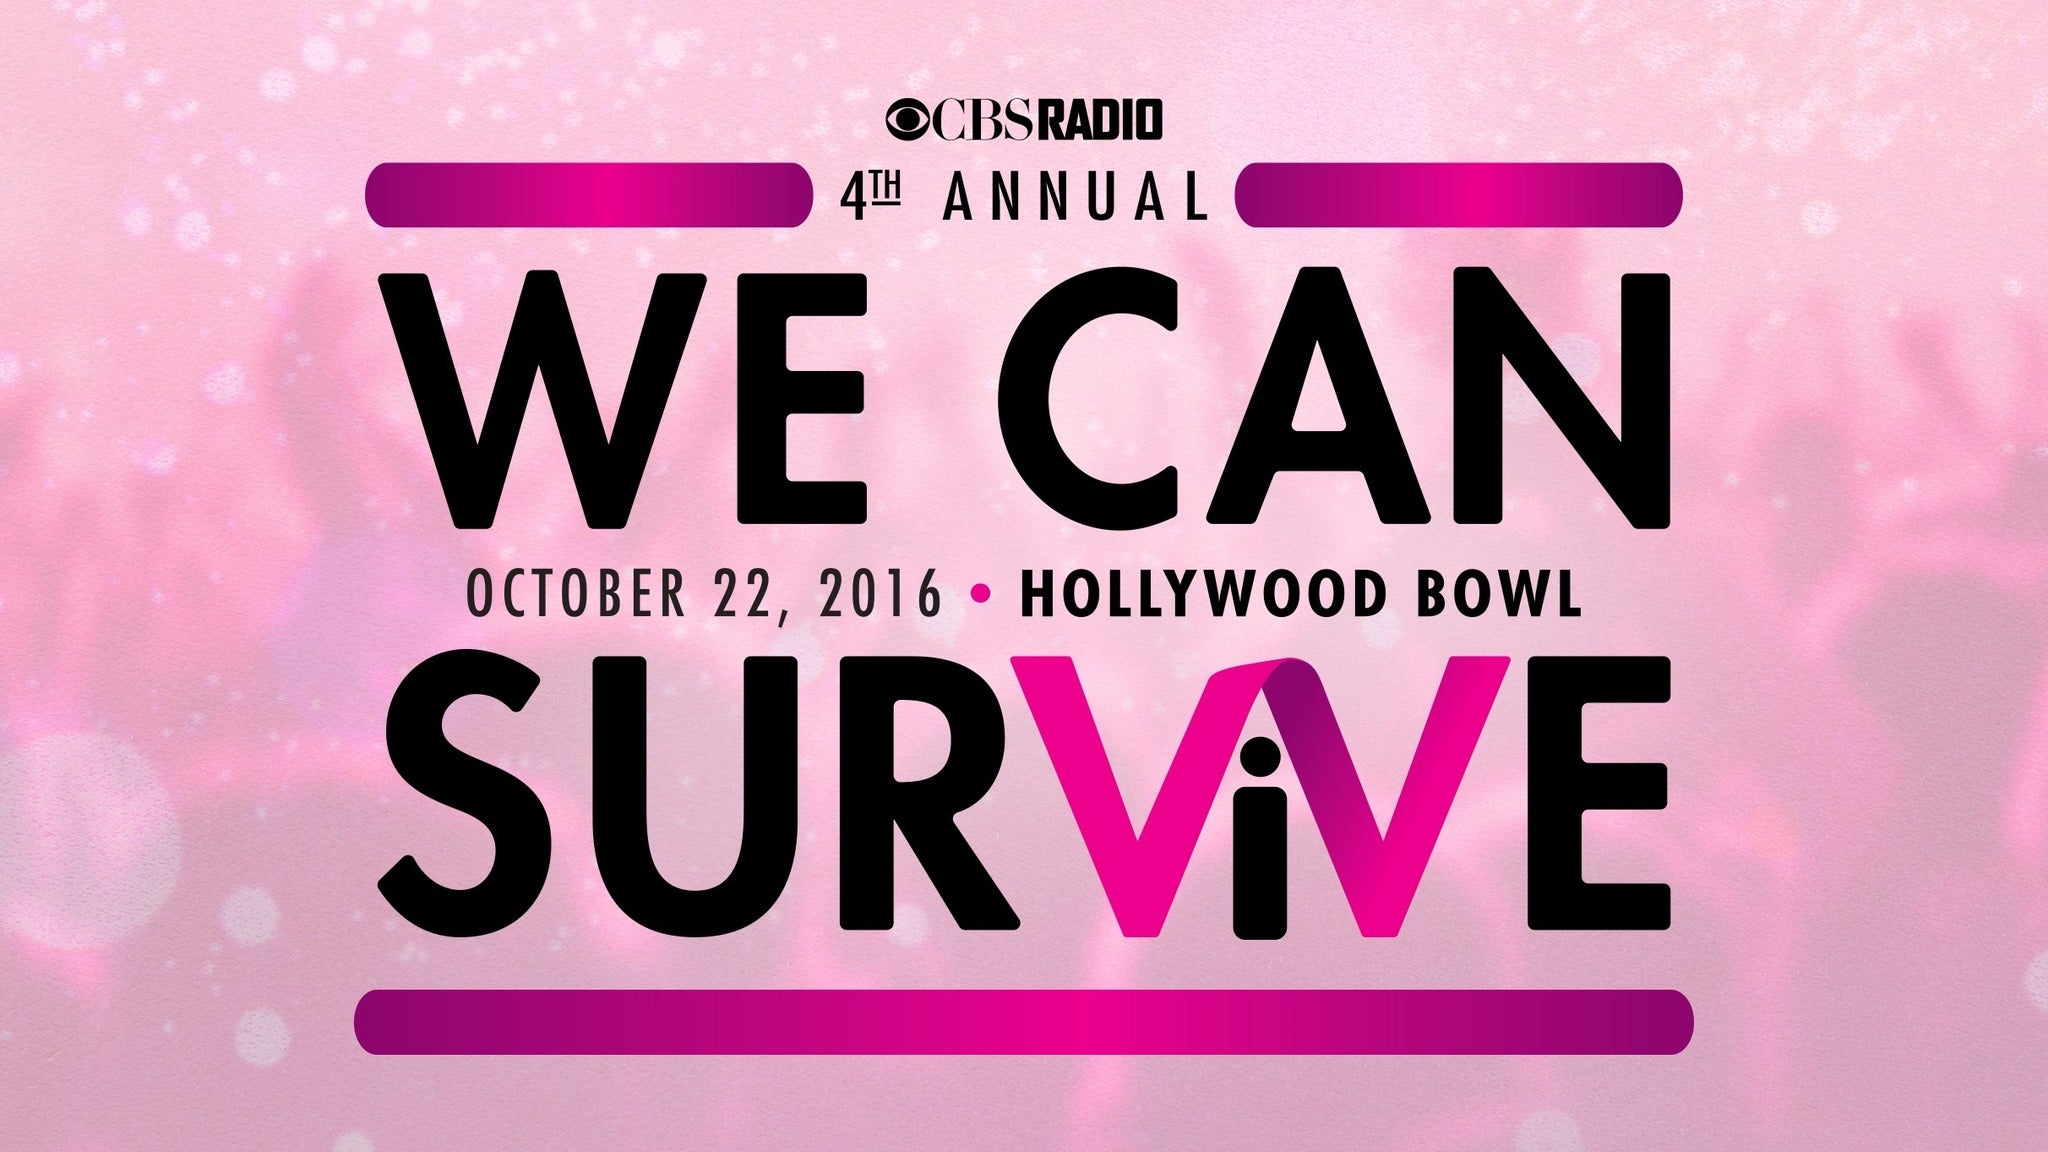 CBS Radio's We Can Survive at Hollywood Bowl